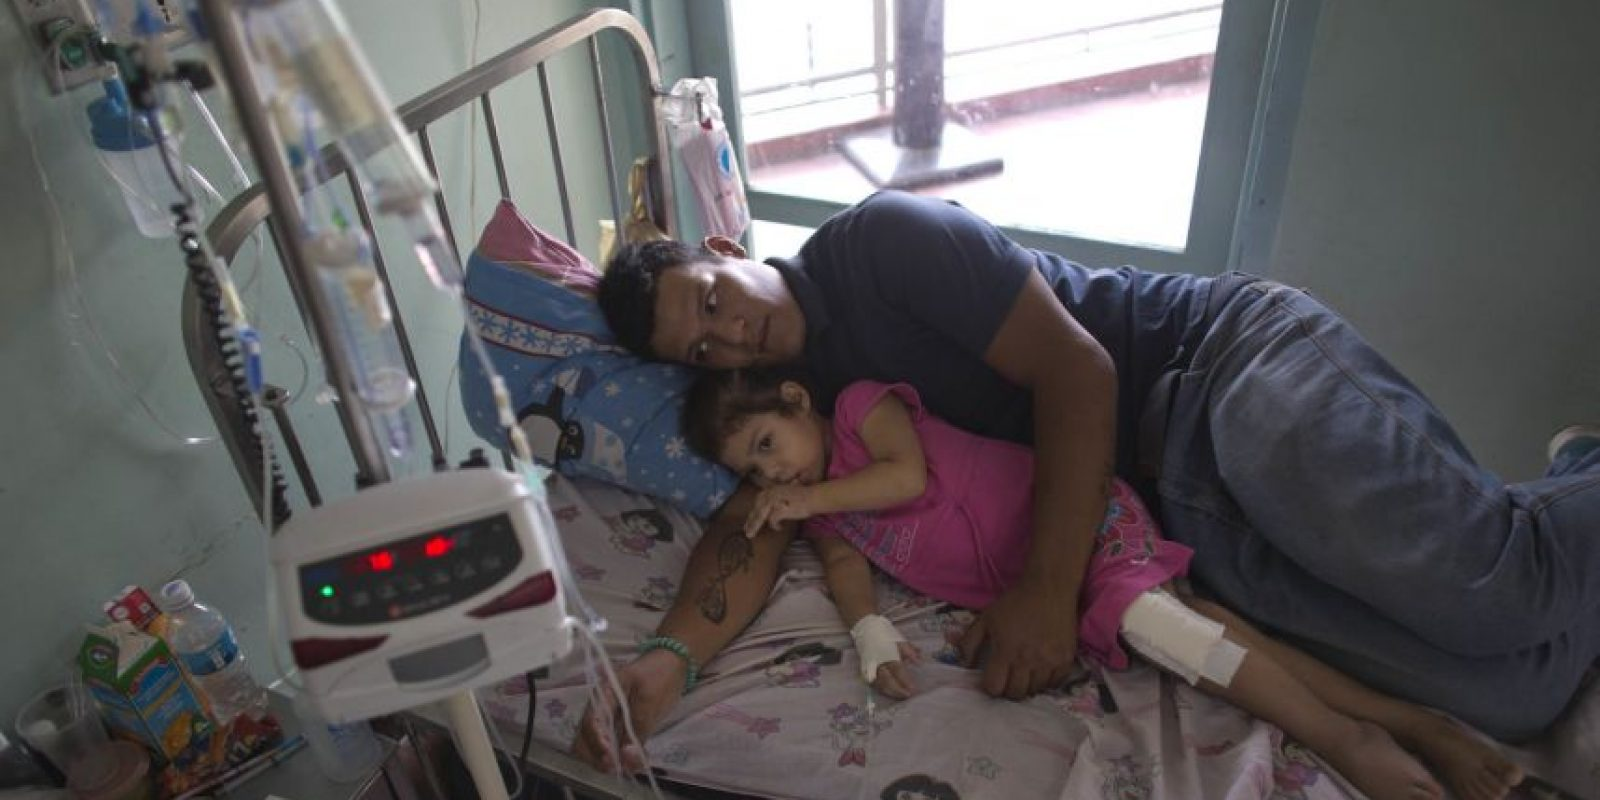 Maykol Pacheco abraza a Ashley en su cama de hospital Foto: AP